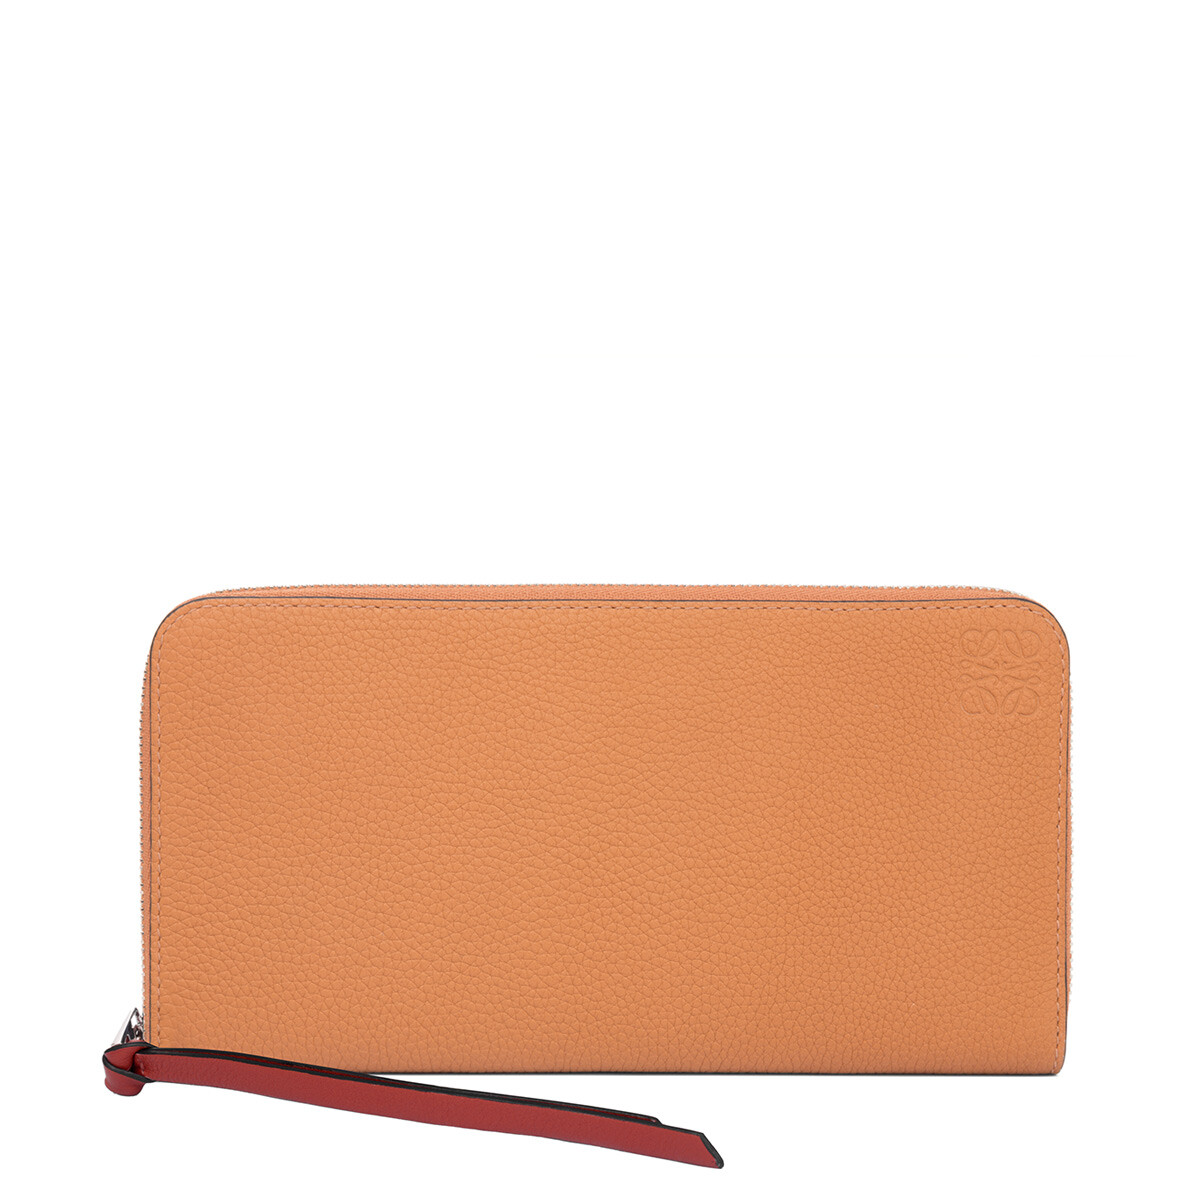 LOEWE Zip Around Wallet Light Caramel/Pecan front